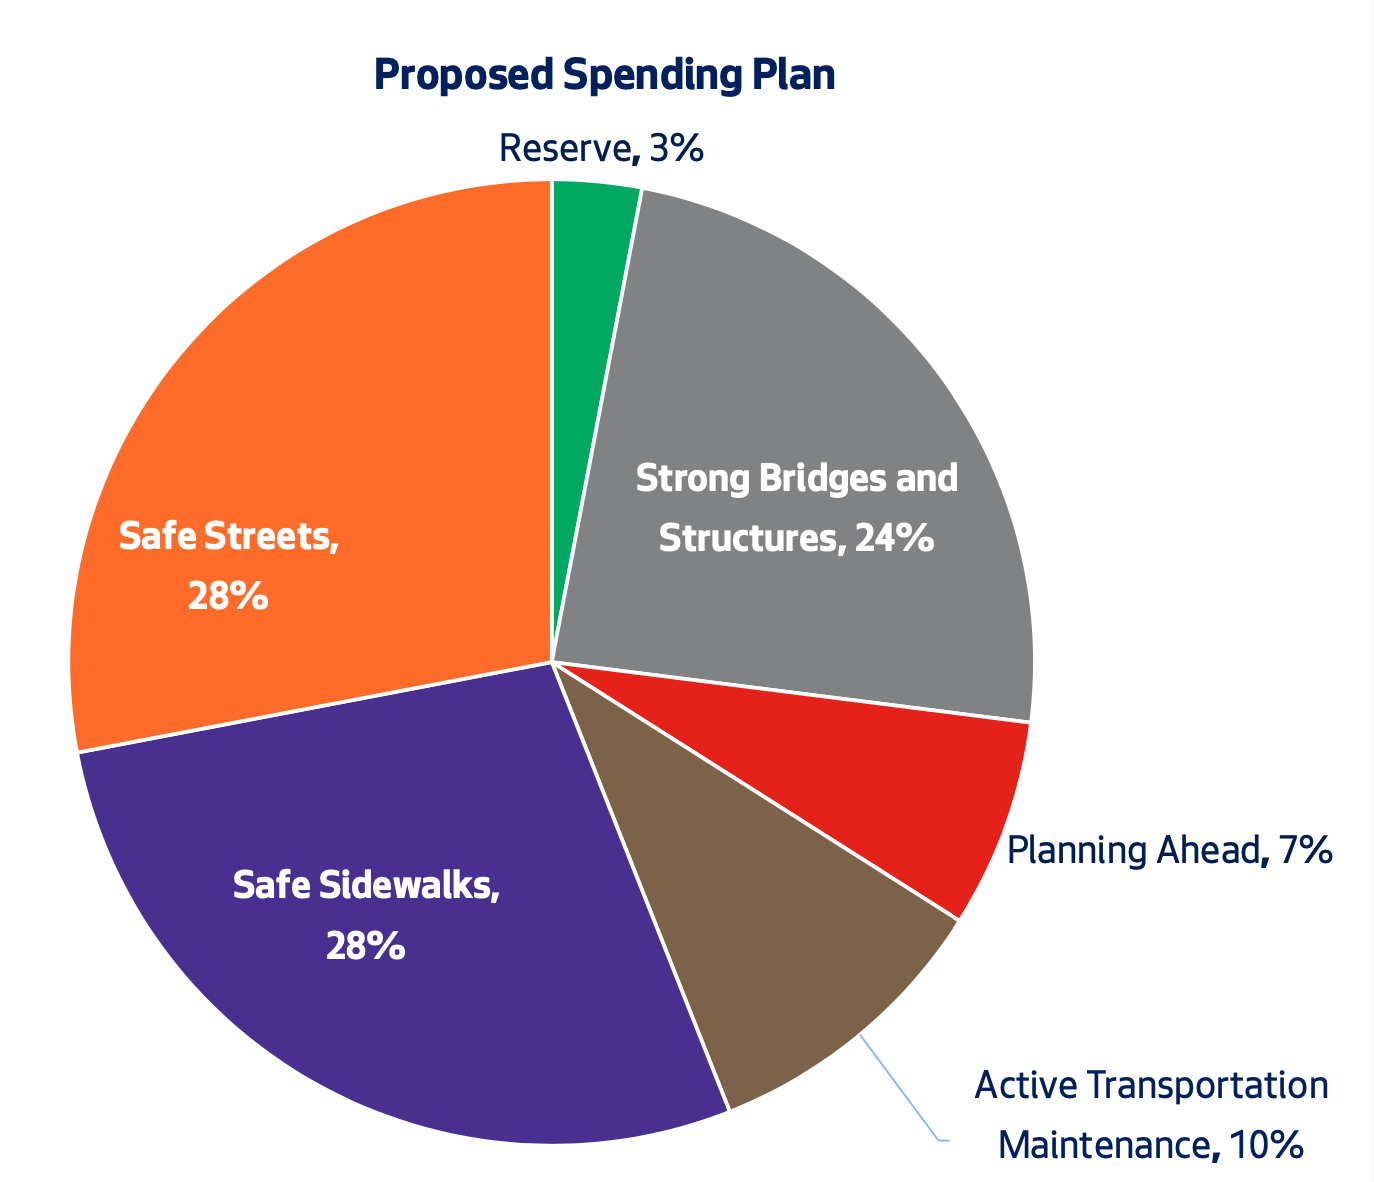 A pie chart showing funding from the Vehicle Licensing Fee.